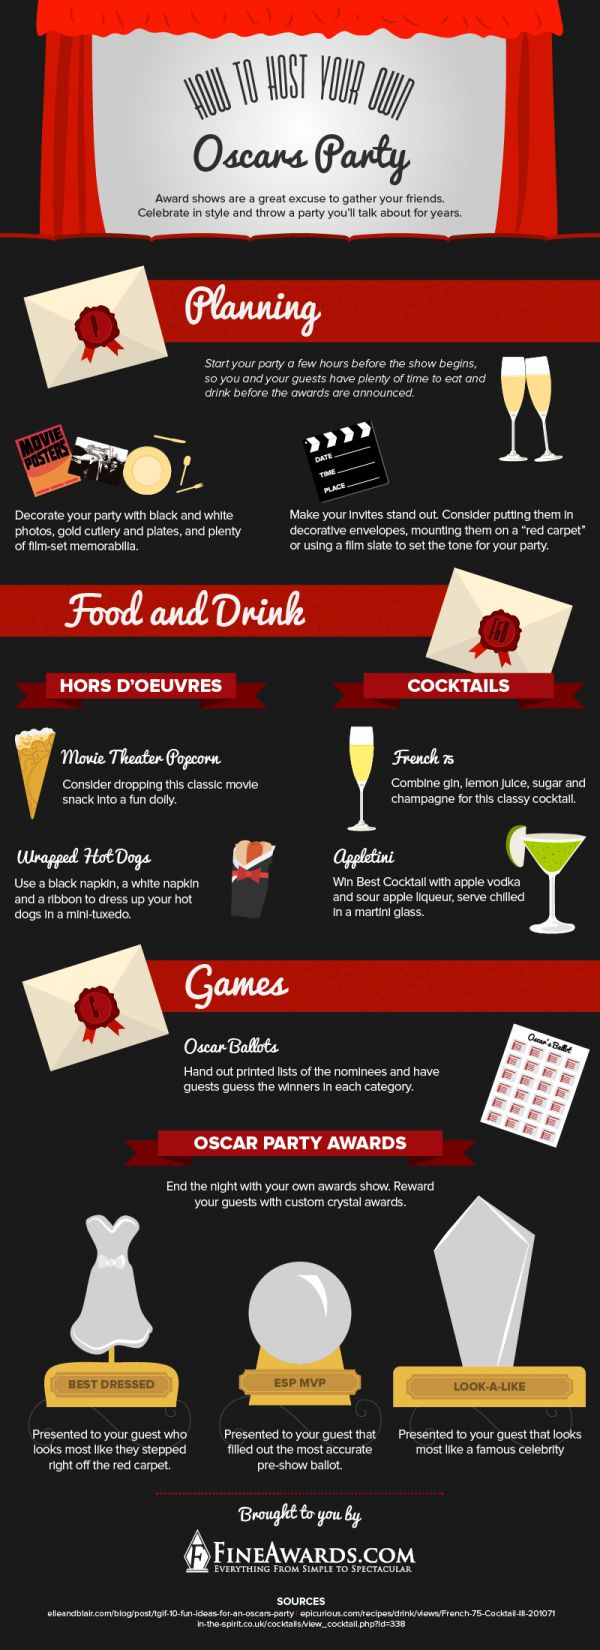 FineAwards_HostYourOwn_Infographic